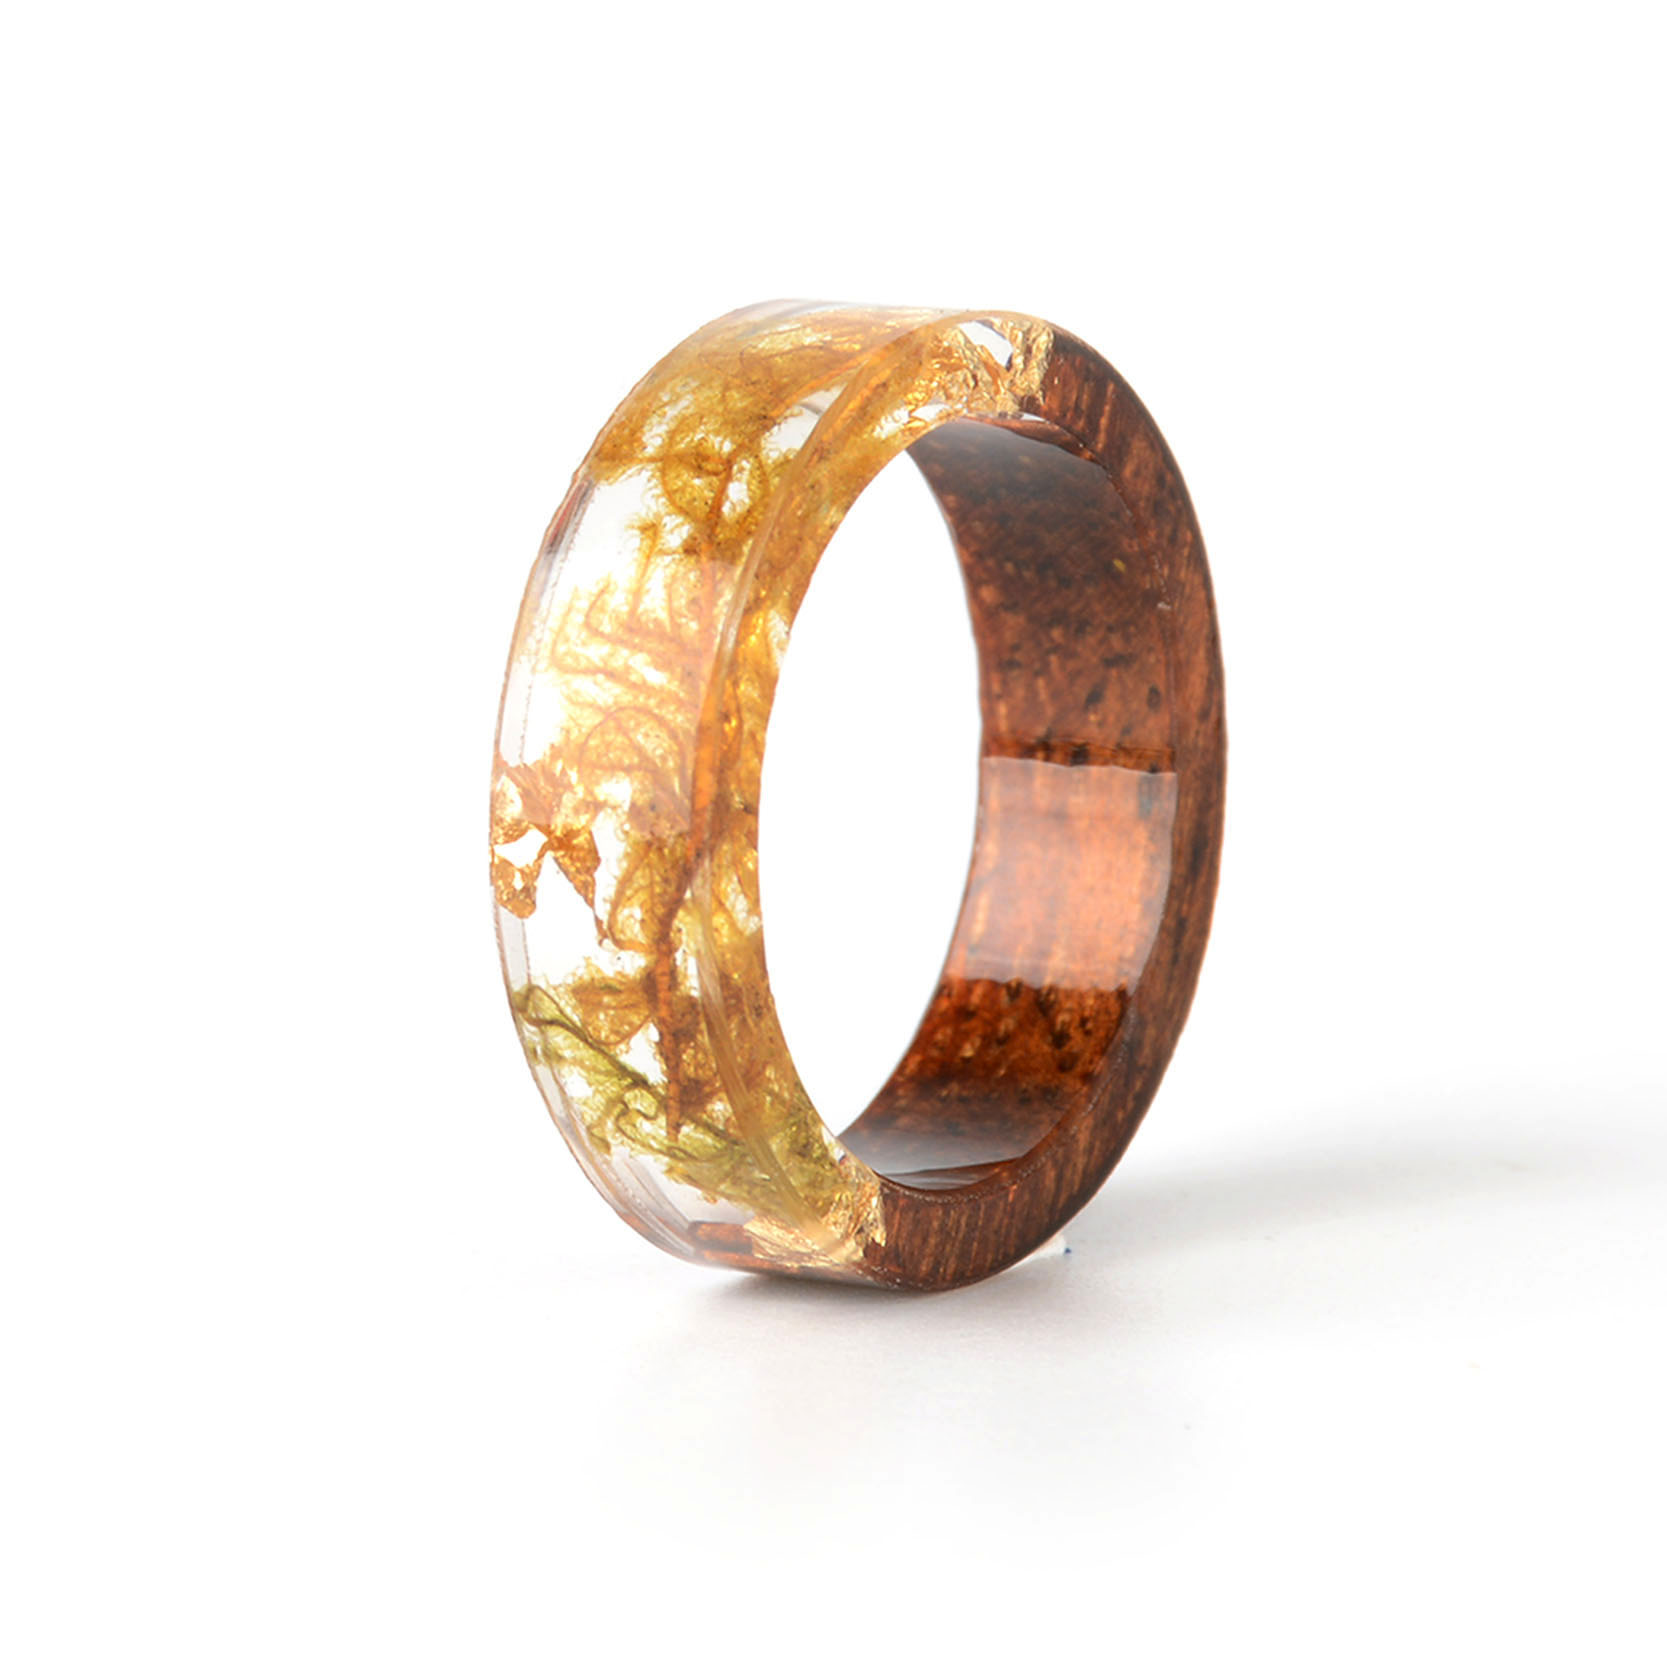 Handmade Wood Resin Ring Many Styles 21